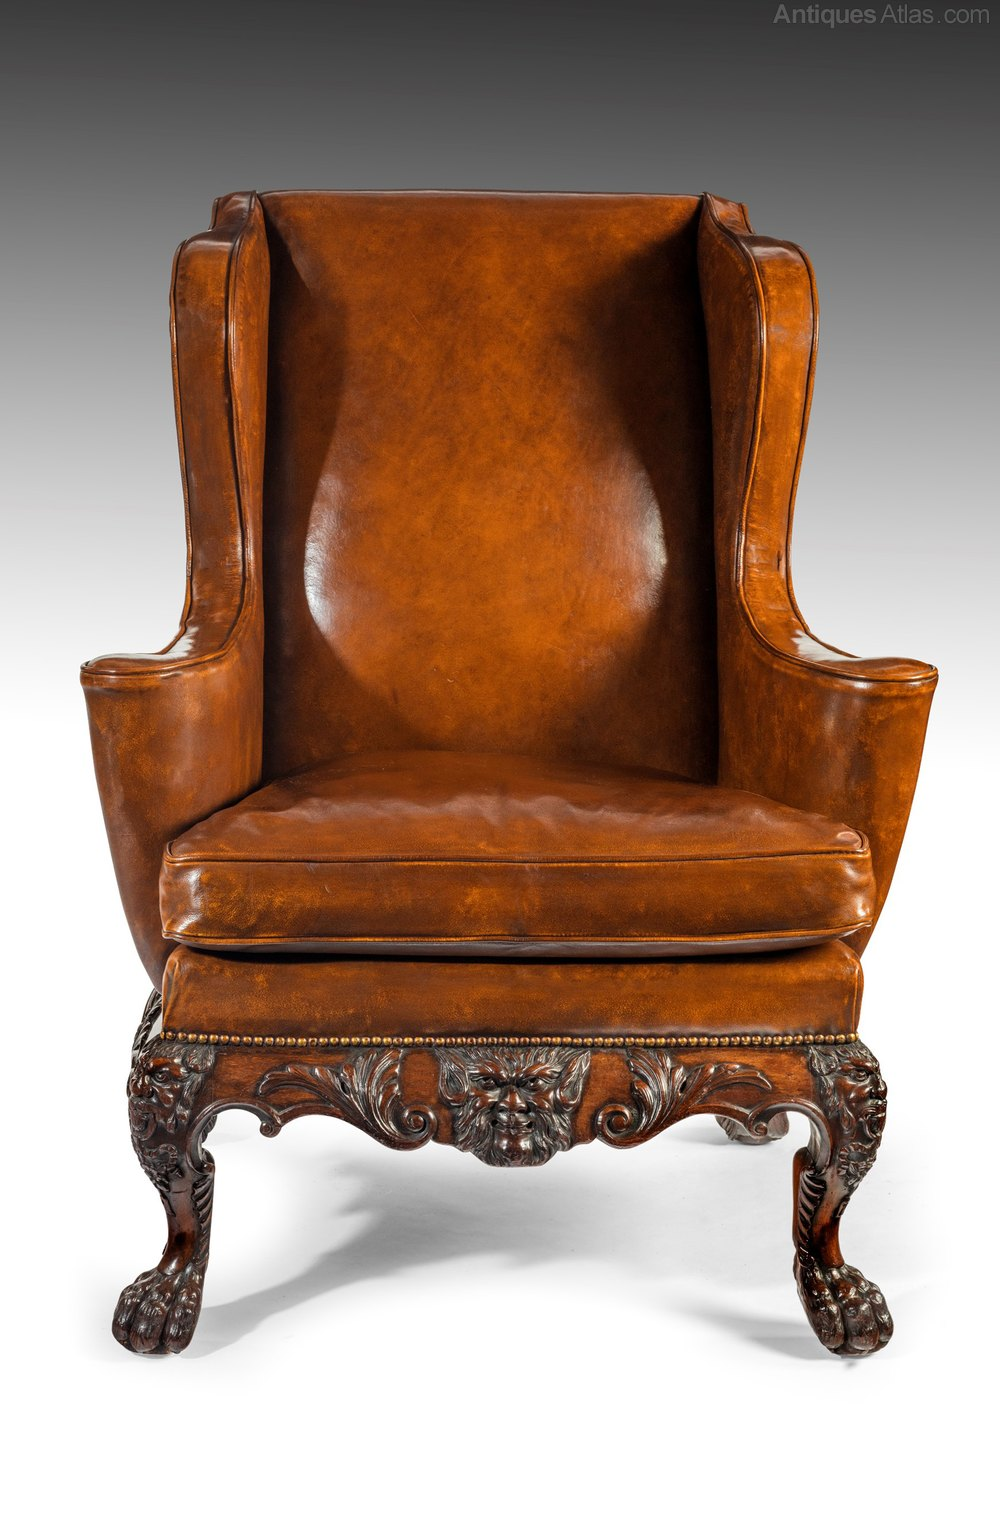 A Handsome Victorian Leather Carved Wing Chair Antiques